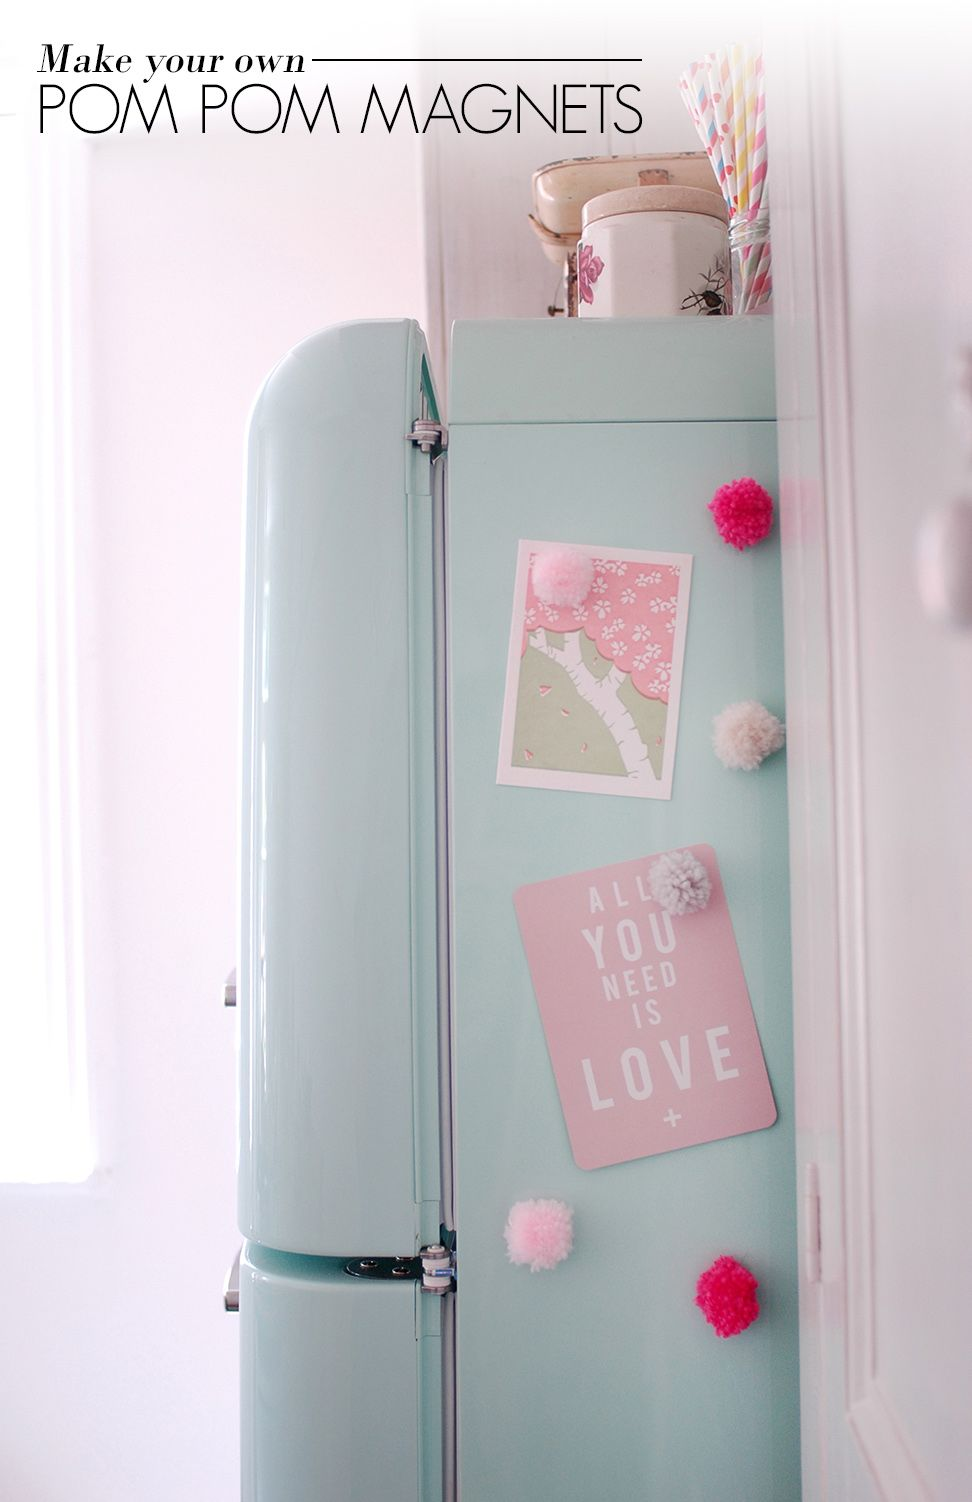 10 diy faciles r aliser pompom pinterest bricolage diy et bricolage d co. Black Bedroom Furniture Sets. Home Design Ideas